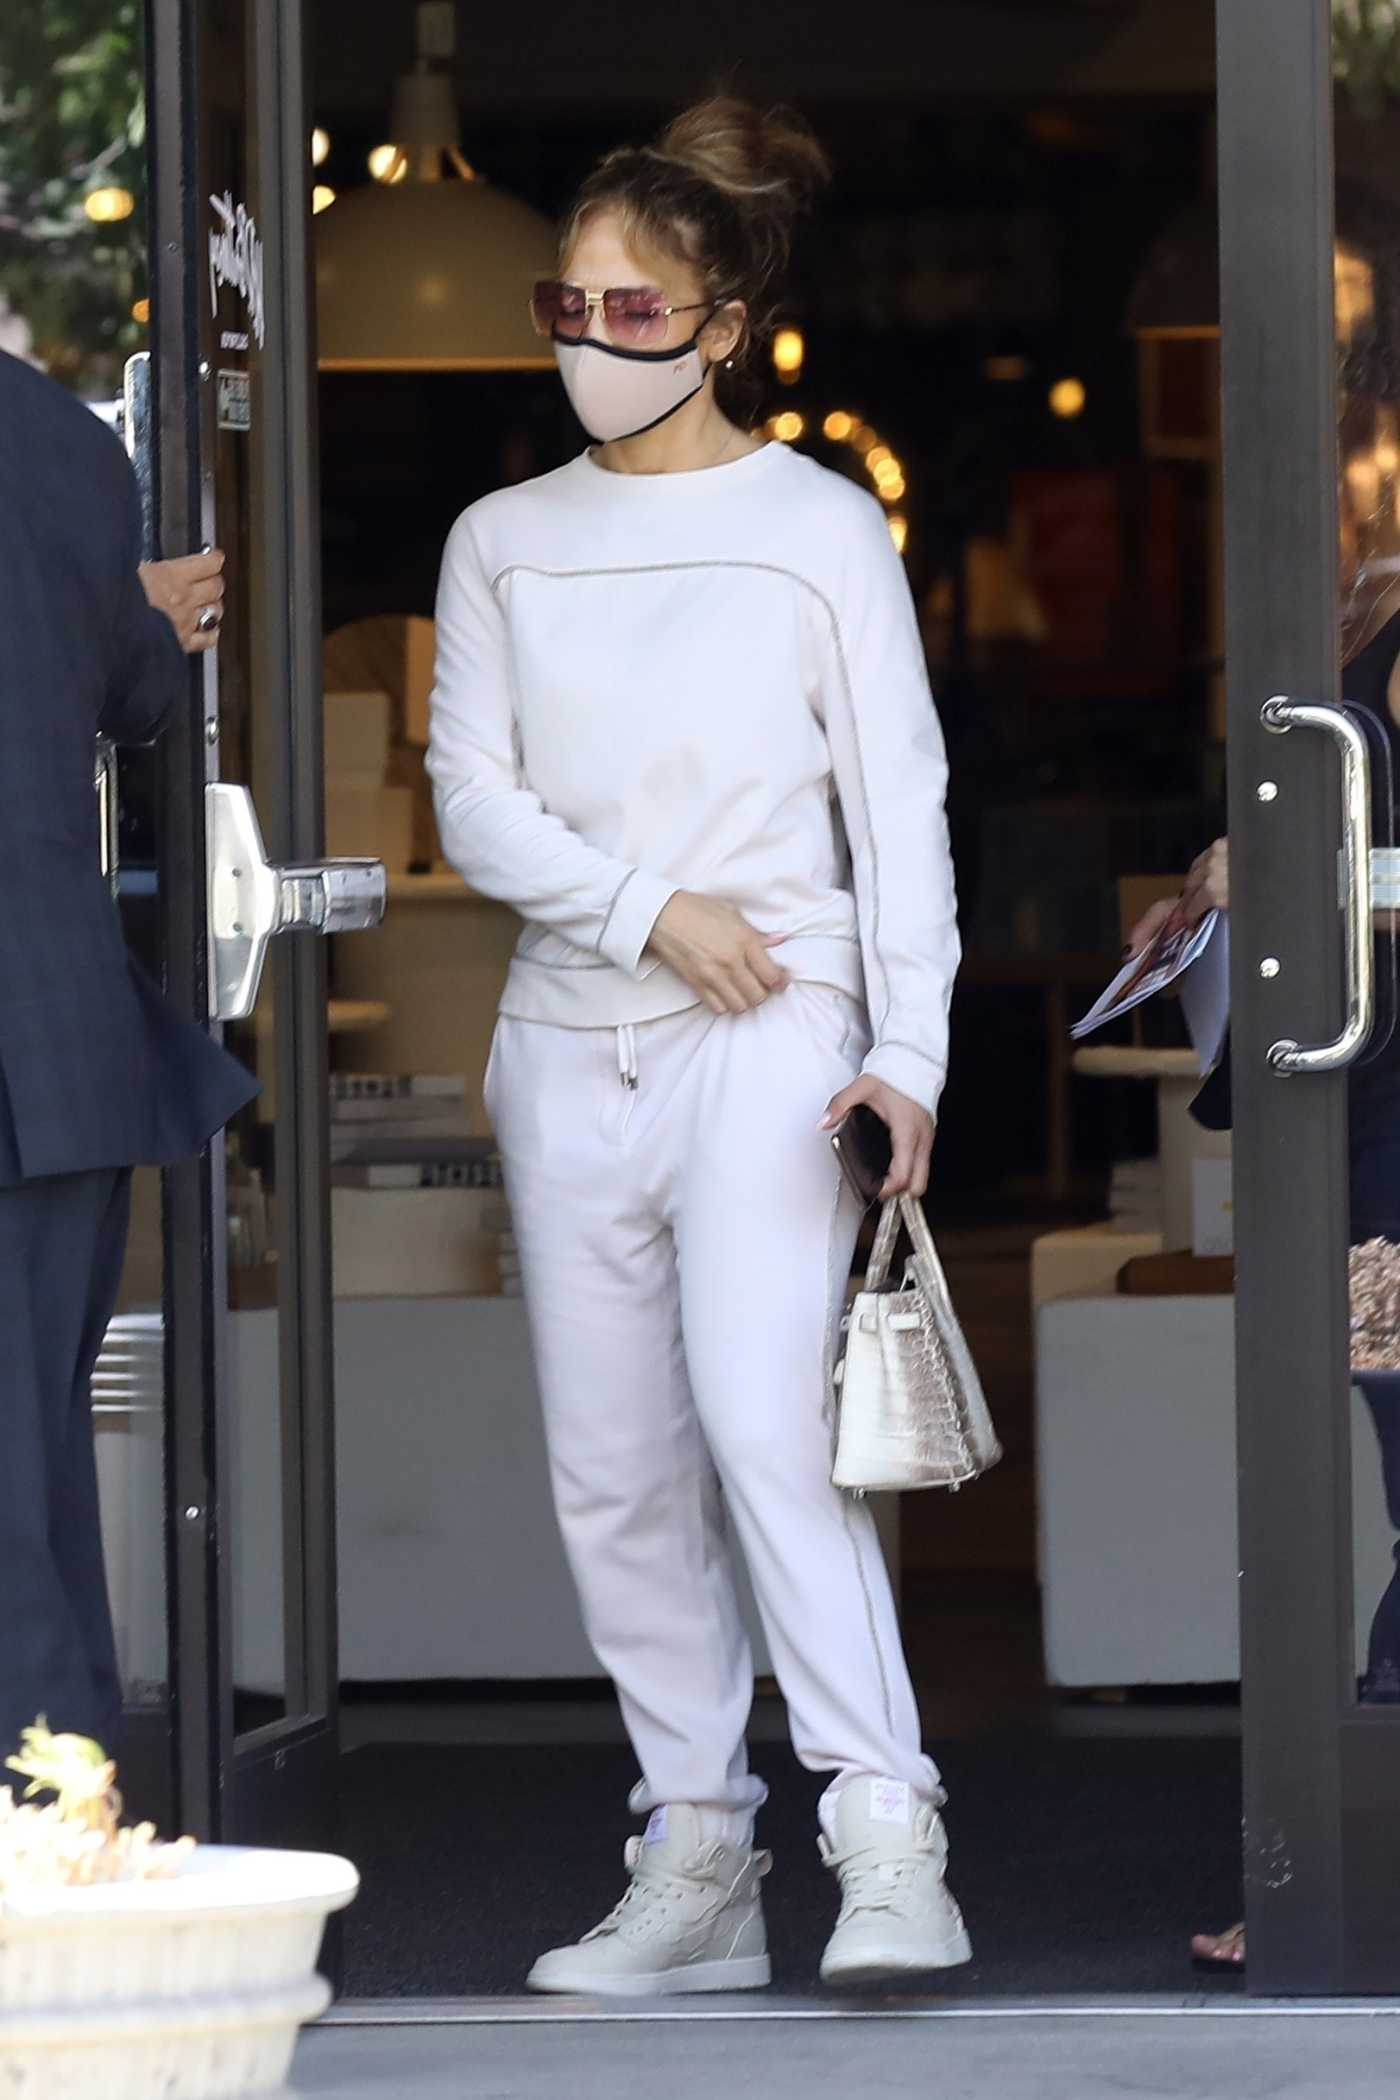 Jennifer Lopez in a White Sweatsuit Shops for New Furniture at HD Buttercup Furniture Store in Los Angeles 08/07/2021